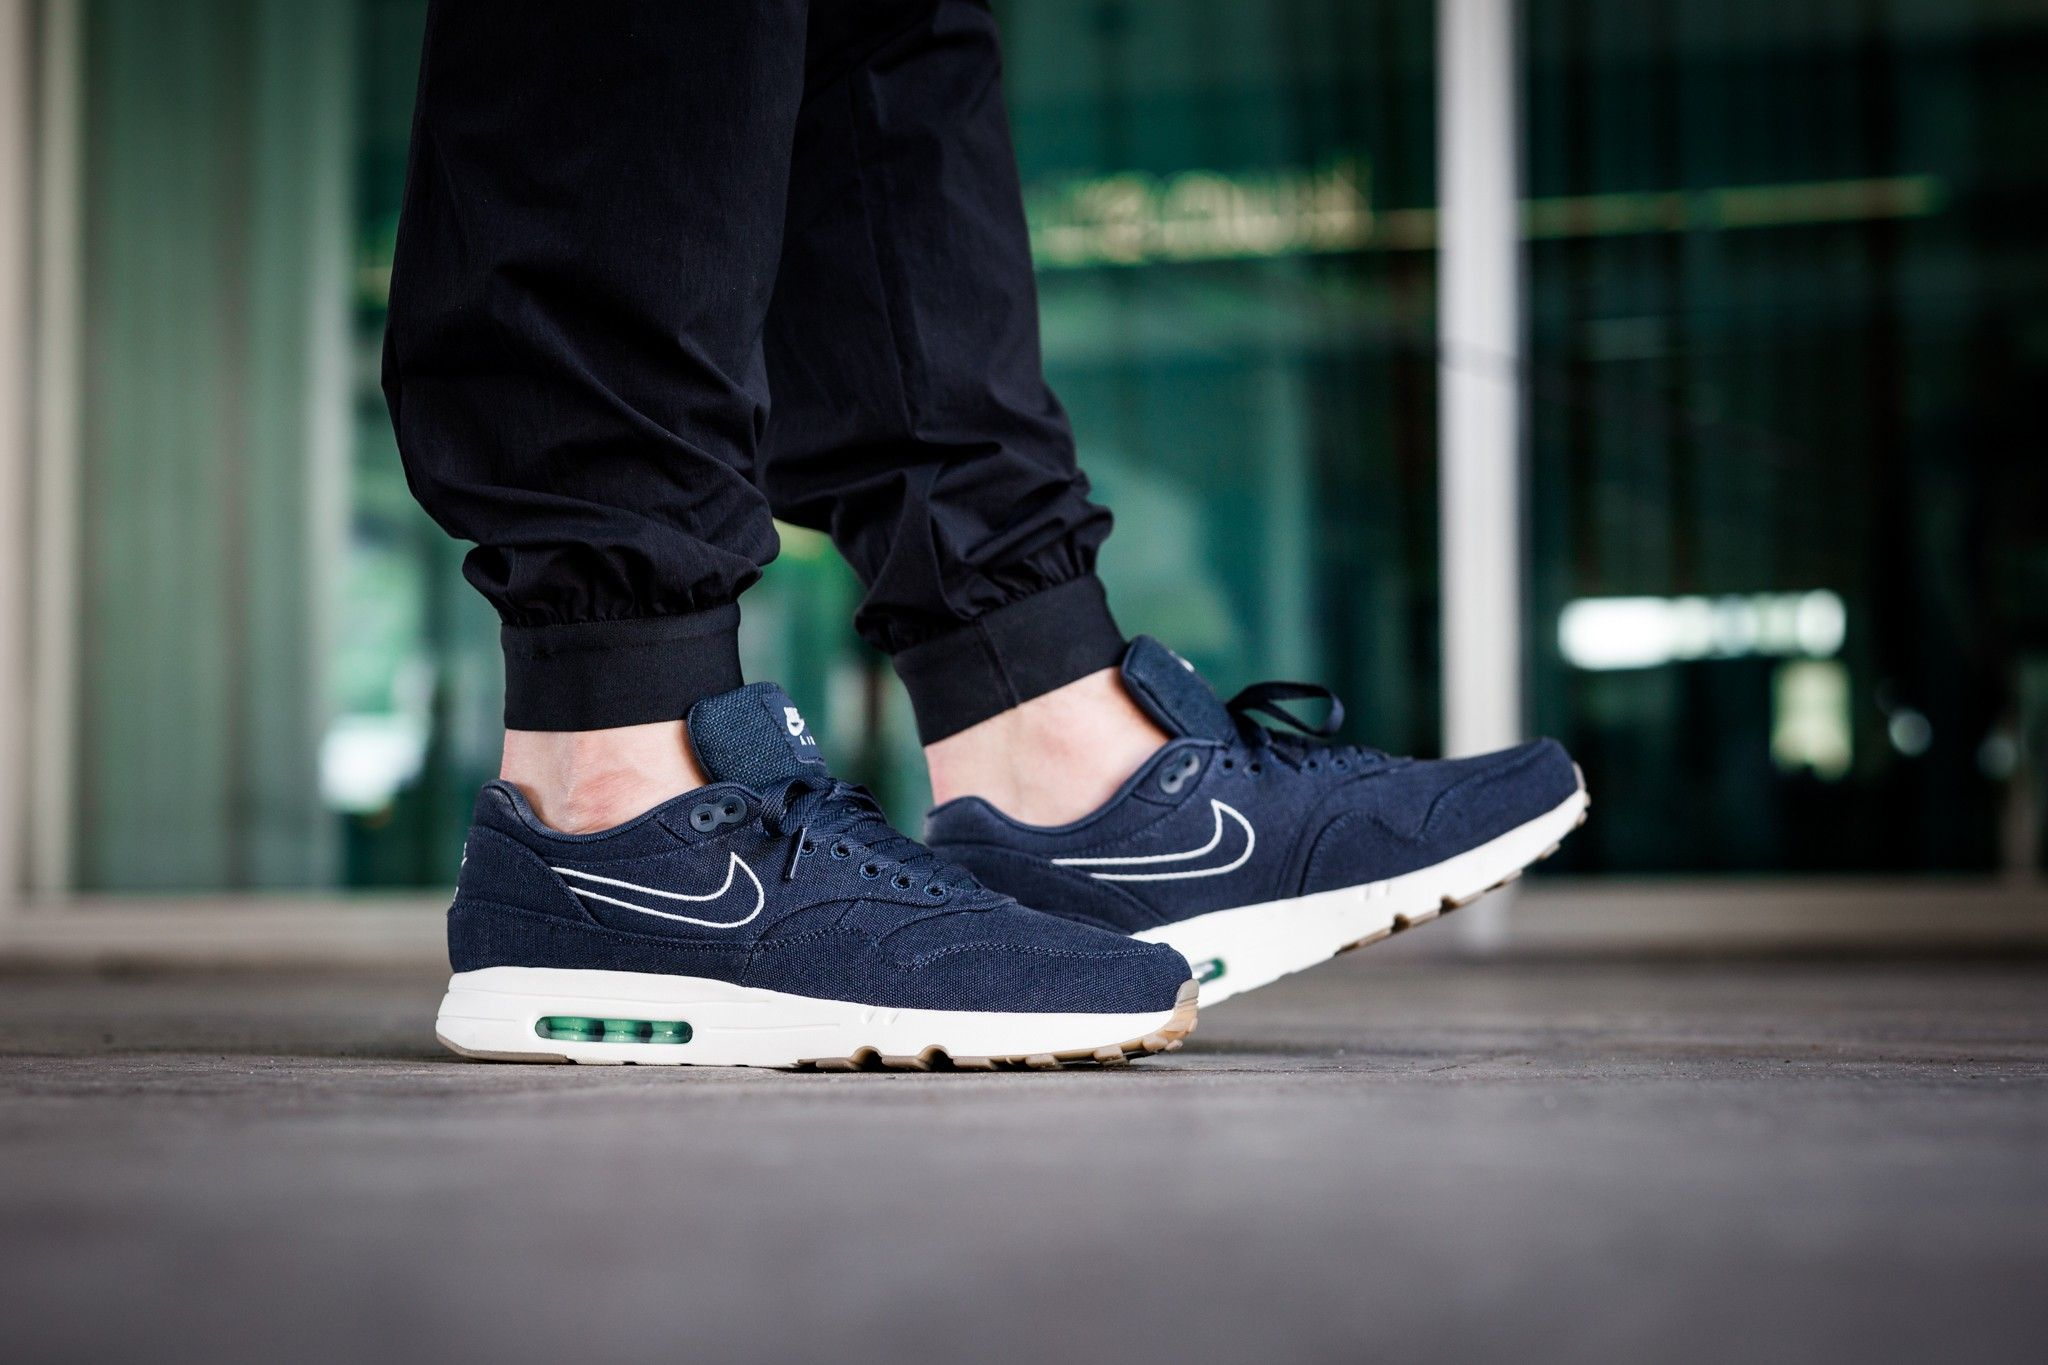 buy popular a2310 ca843 Nike Air Max 1 Ultra 2.0 Textile Armoury Navy Sail Fresh Mint Mens Sale  Cheap